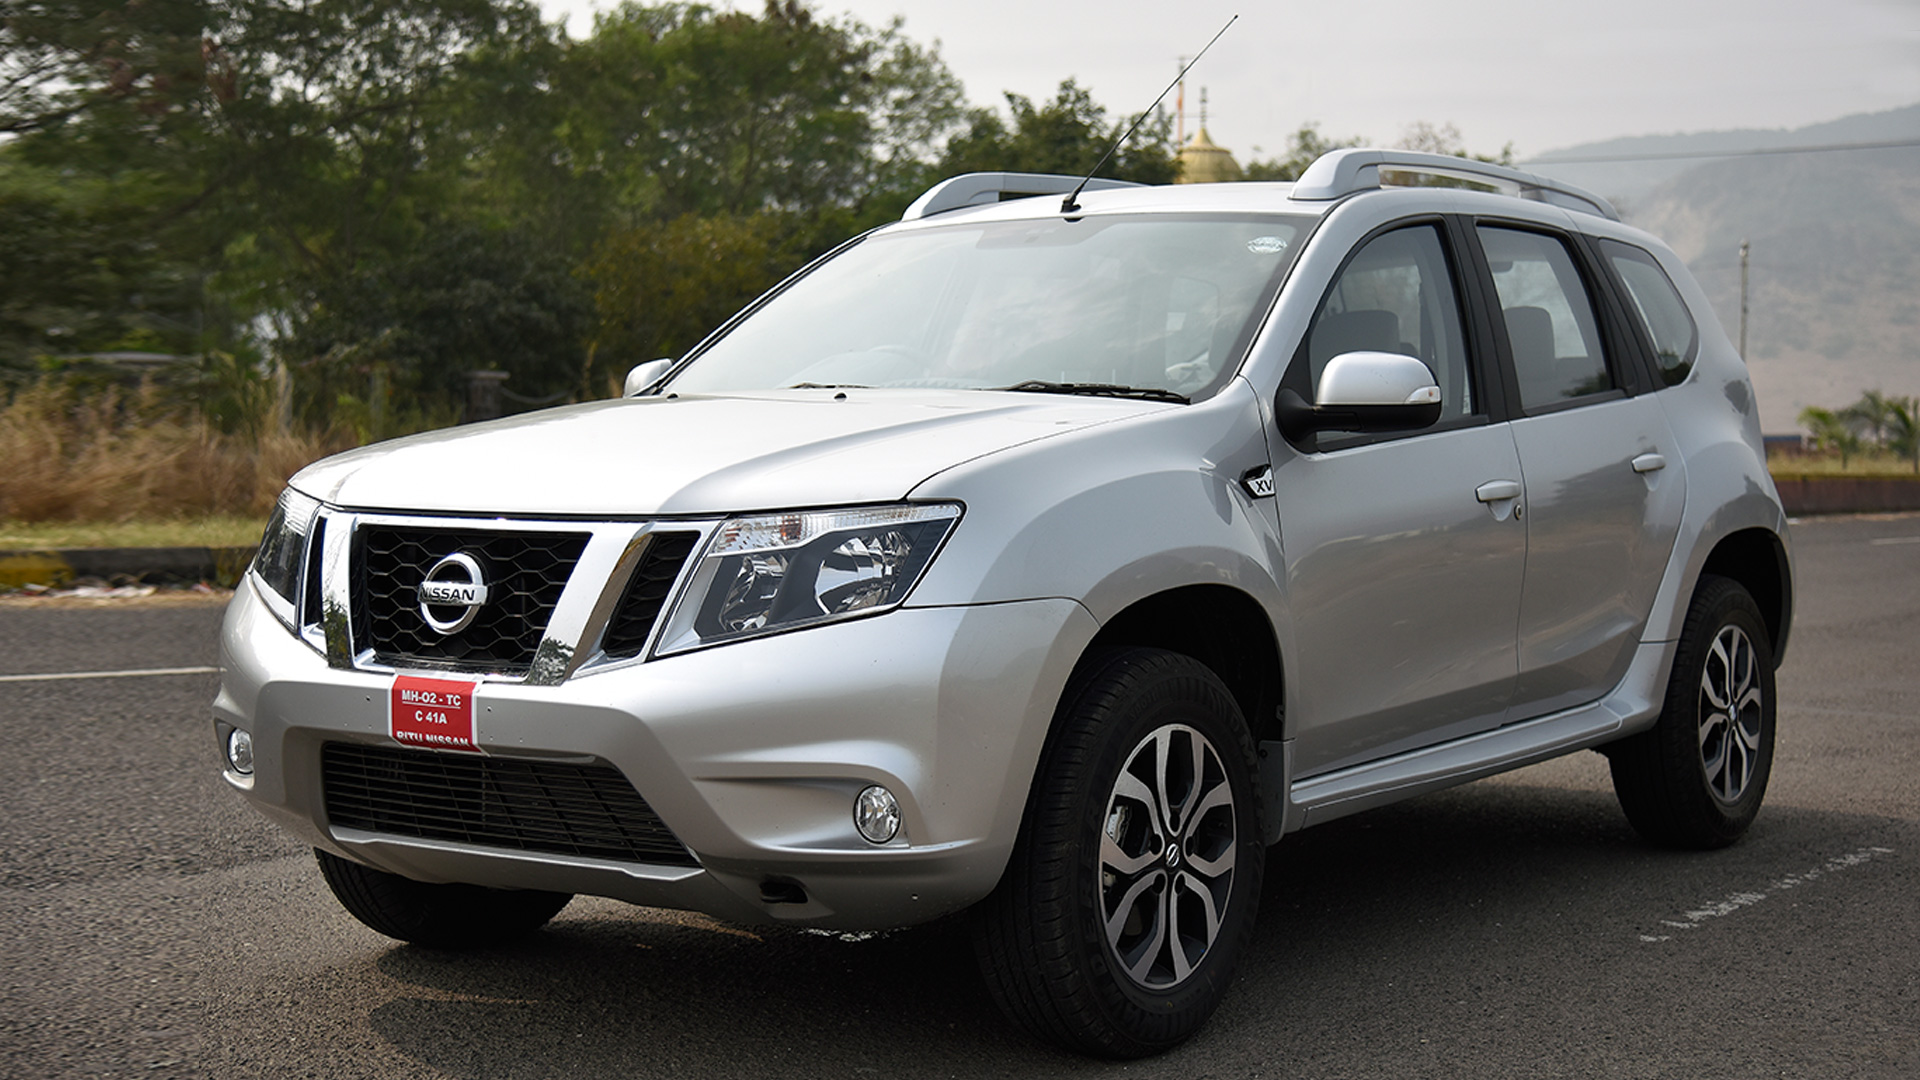 Nissan Terrano 2017 XL (O) dCi 85PS - Price, Mileage ...